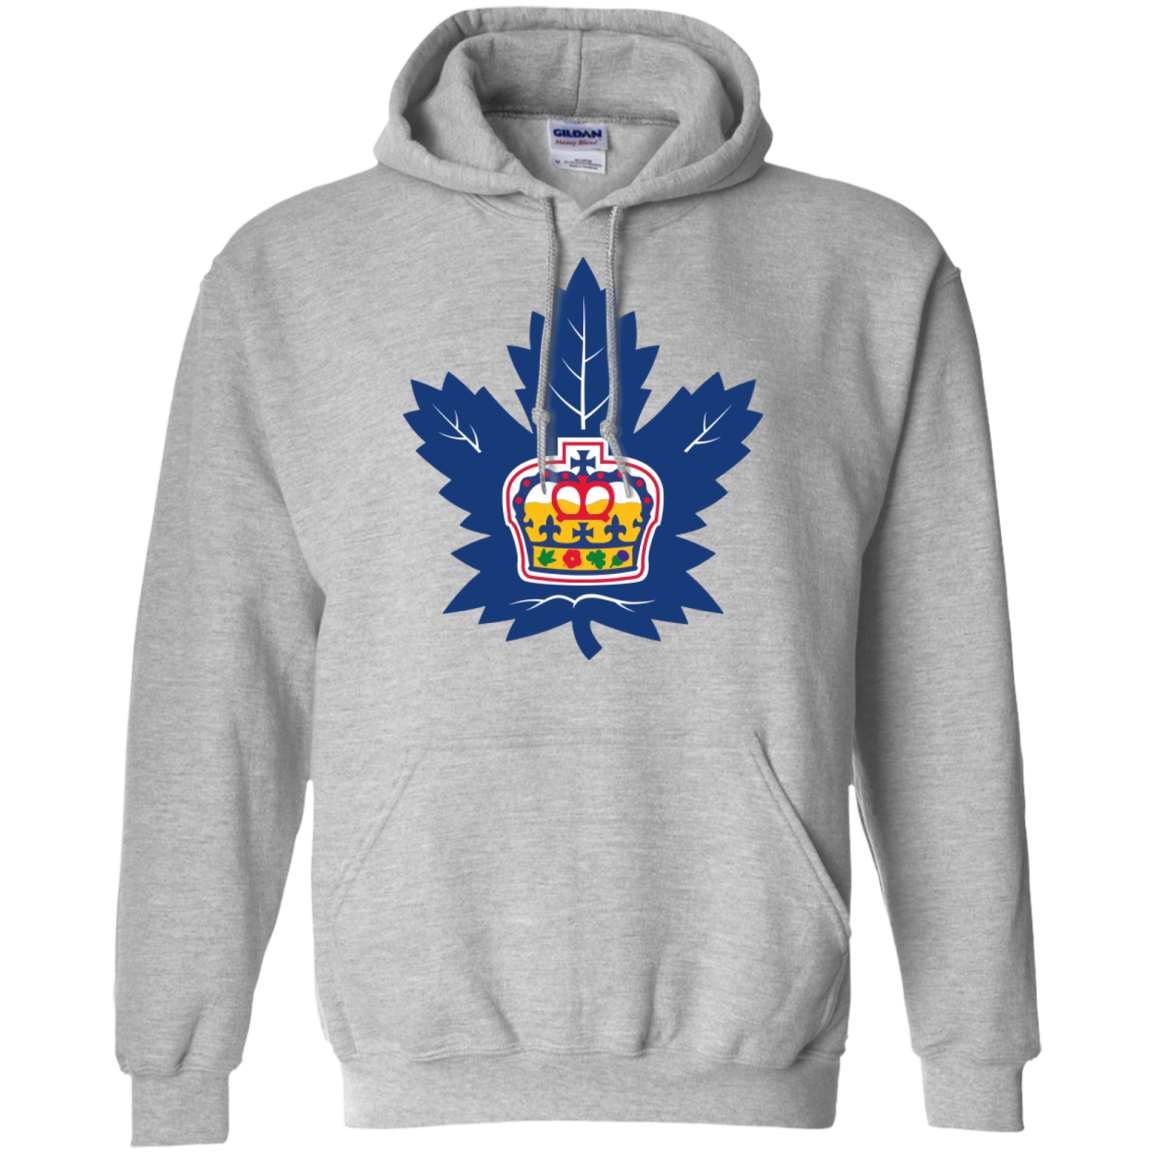 81a5c80c2f5 Toronto Marlies Primary Logo Adult Pullover Hoodie